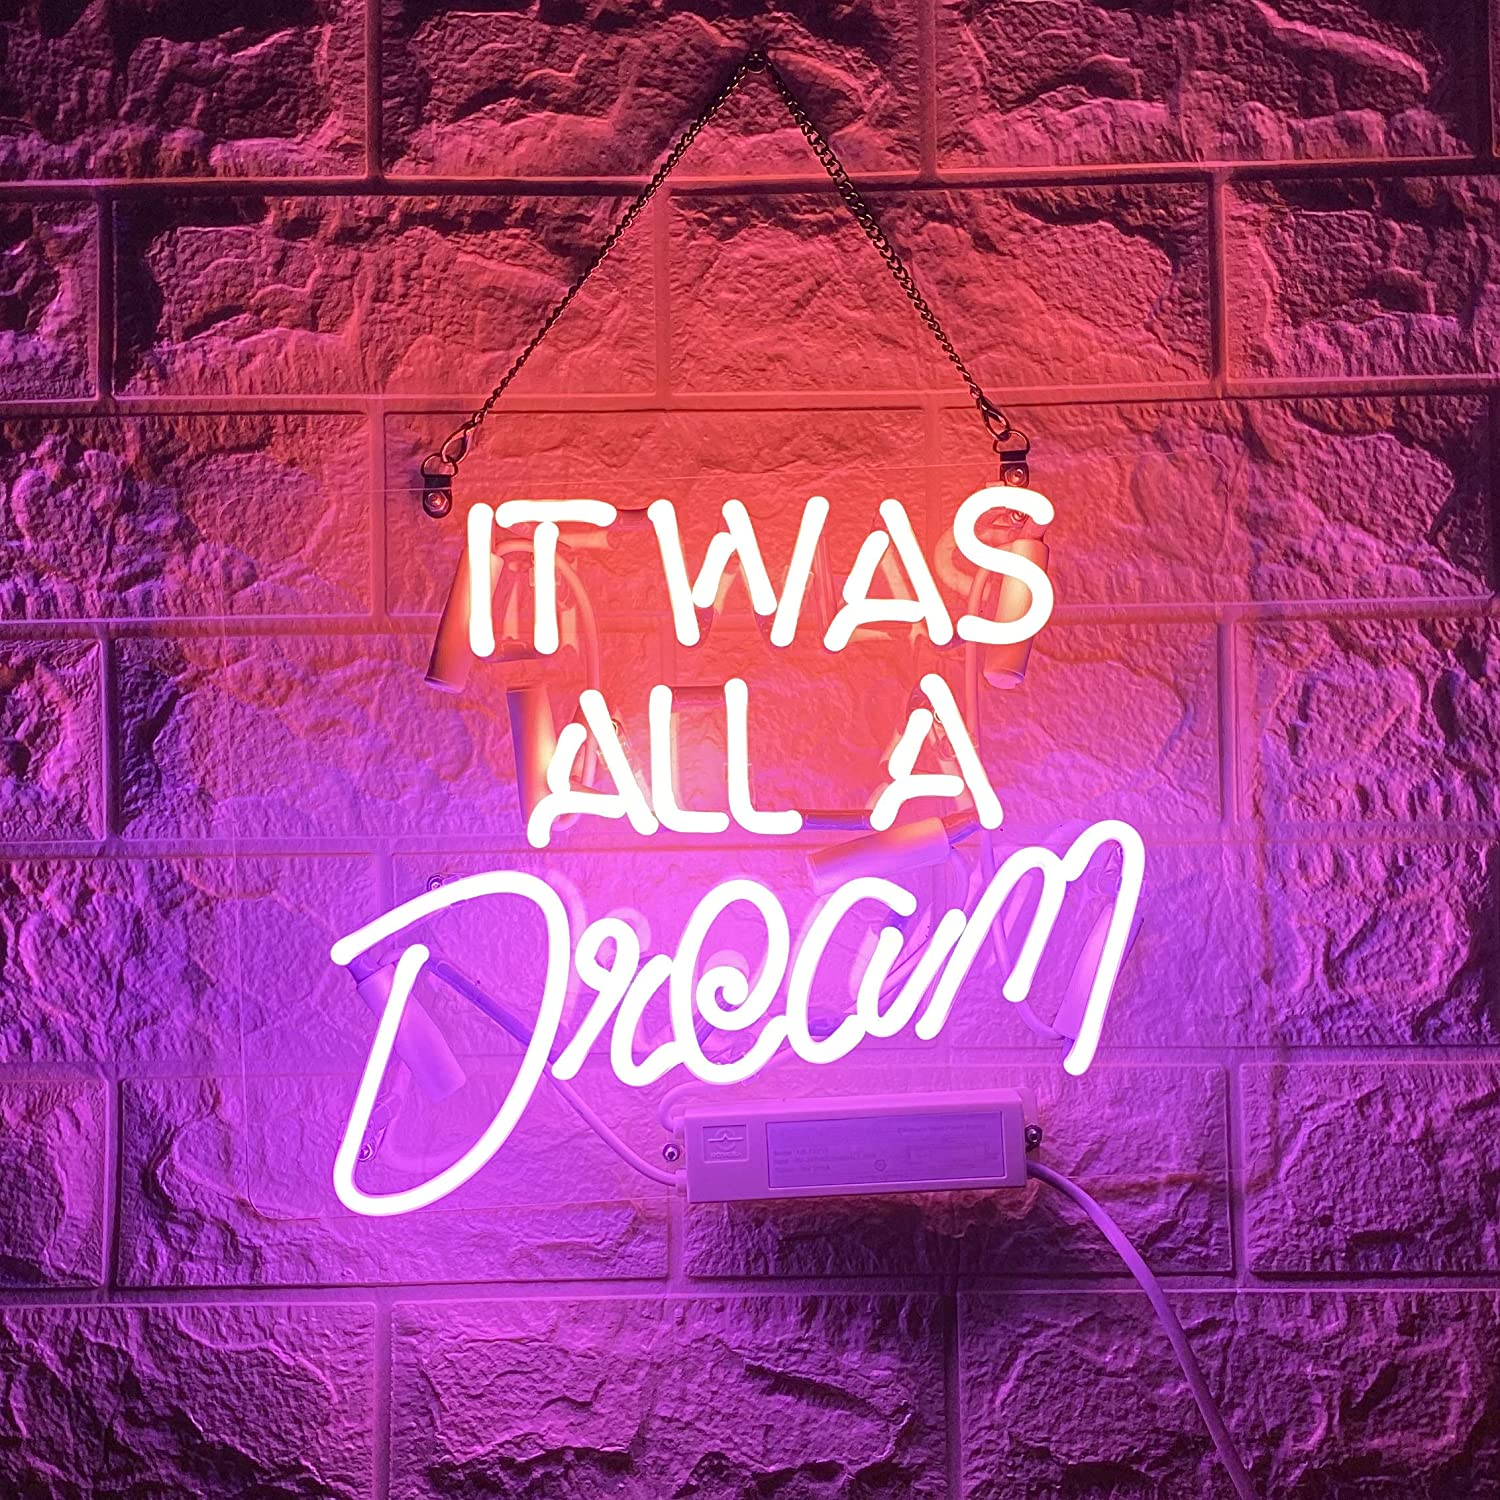 CEOSEI Neon Signs It was All a Dream Pink Purple Handmade Real Glass Tube Neon Lights Sign for Home Decor or Bar Wall Neon Light Sign Provides Light for Parties, Living Spaces, or Restaurants